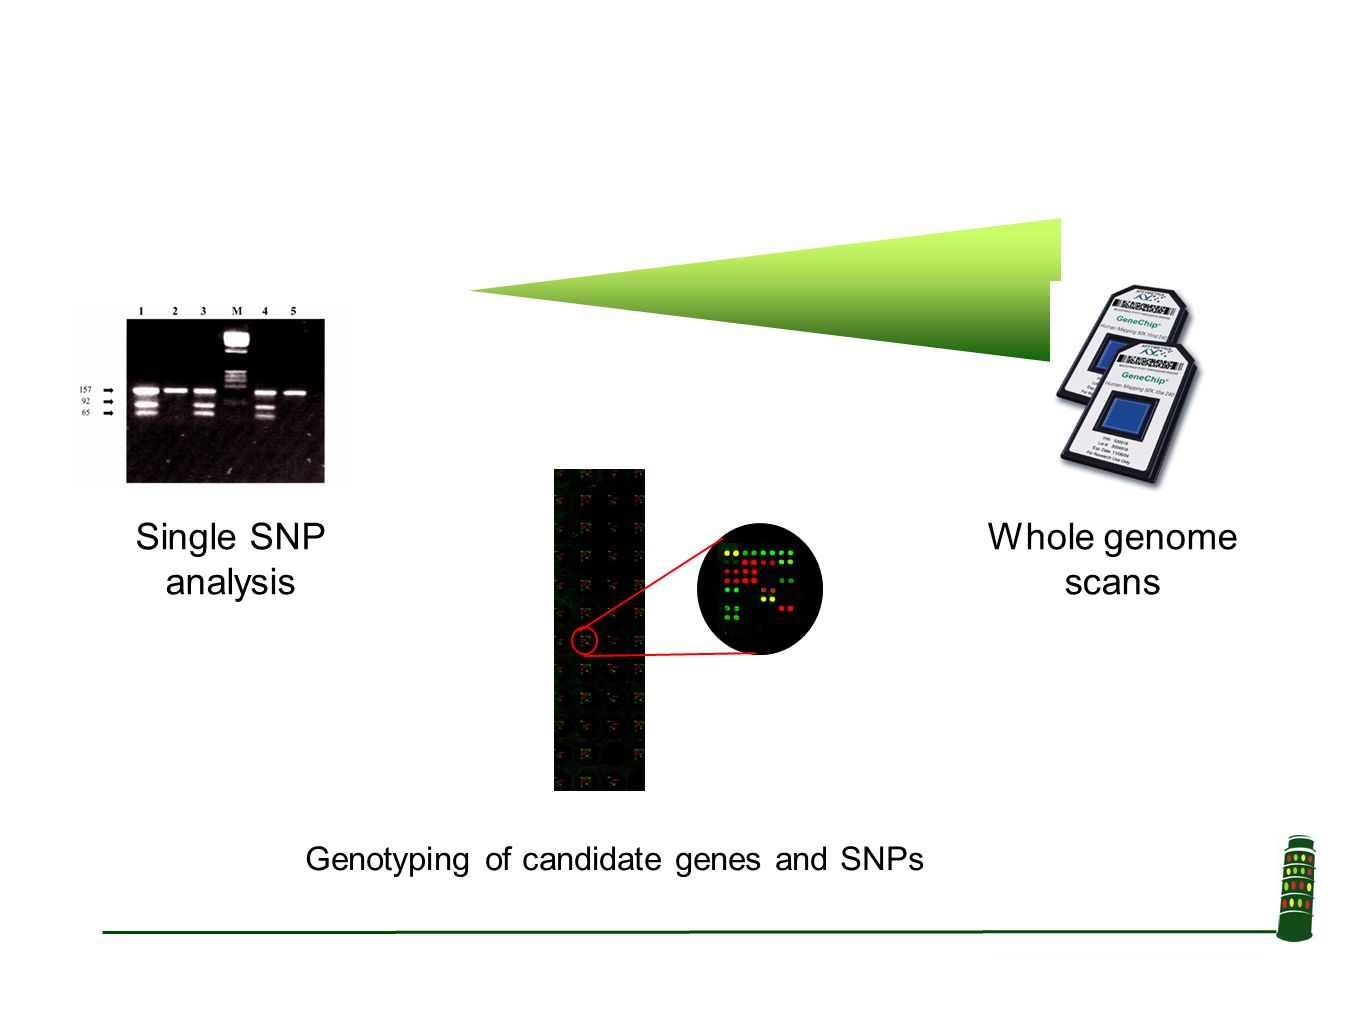 Whole genome scans Single SNP analysis Genotyping of candidate genes and SNPs